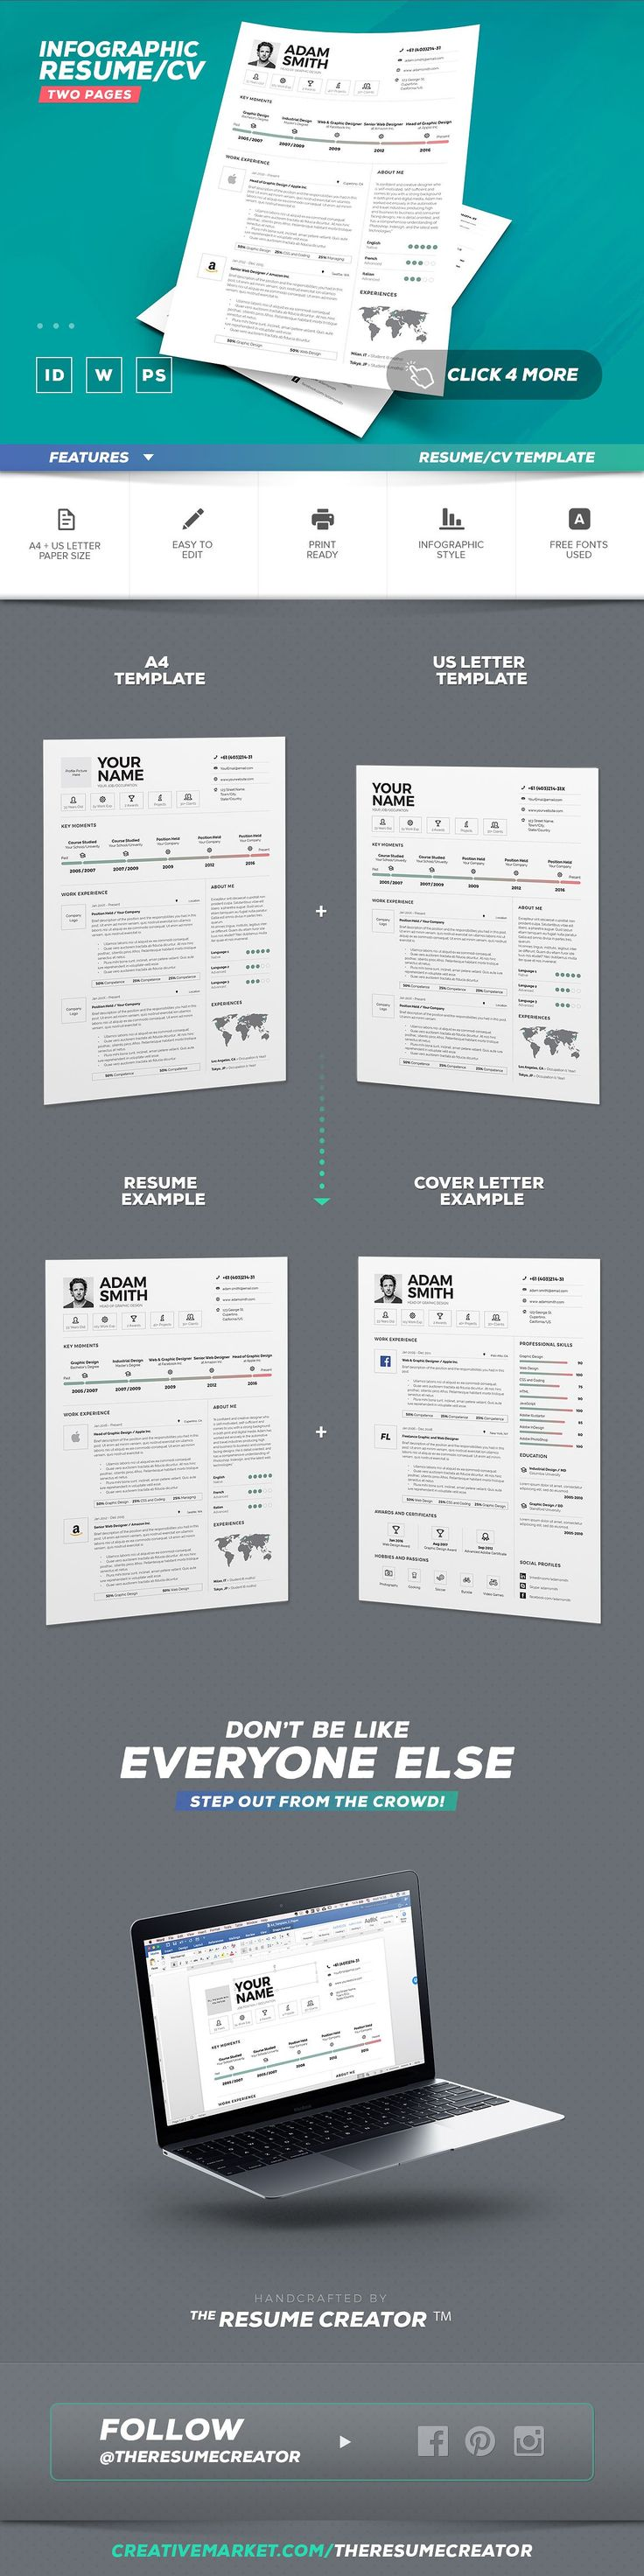 Resume Cv Templates Free Download%0A Where Is The Bahamas On The World Map